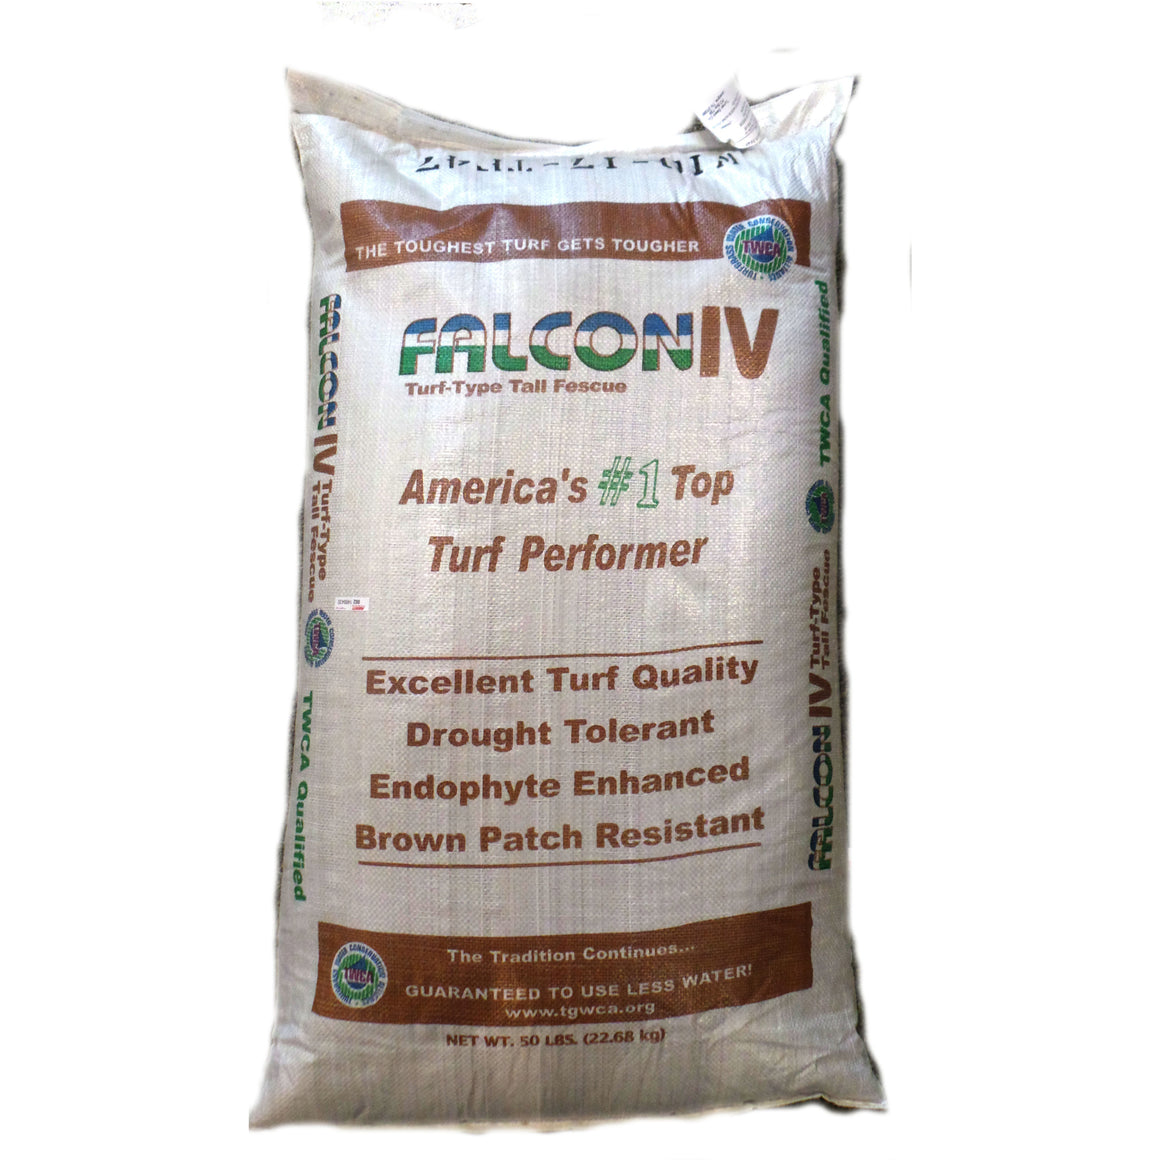 Falcon IV Turf Type Tall Fescue Grass Seeds - 10 Lbs. - Seed World